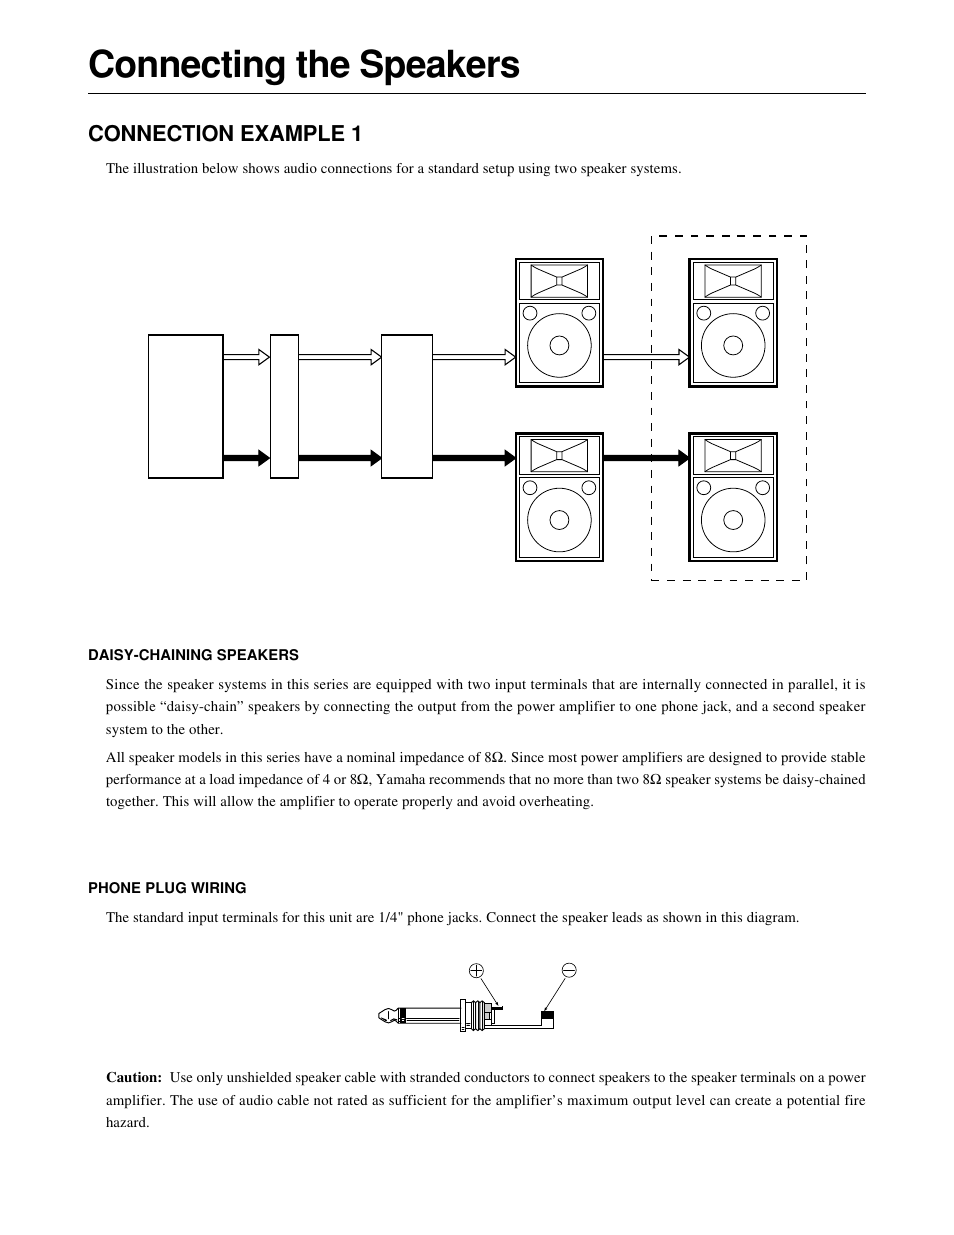 hight resolution of connecting the speakers connection example 1 yamaha s115iva oak user manual page